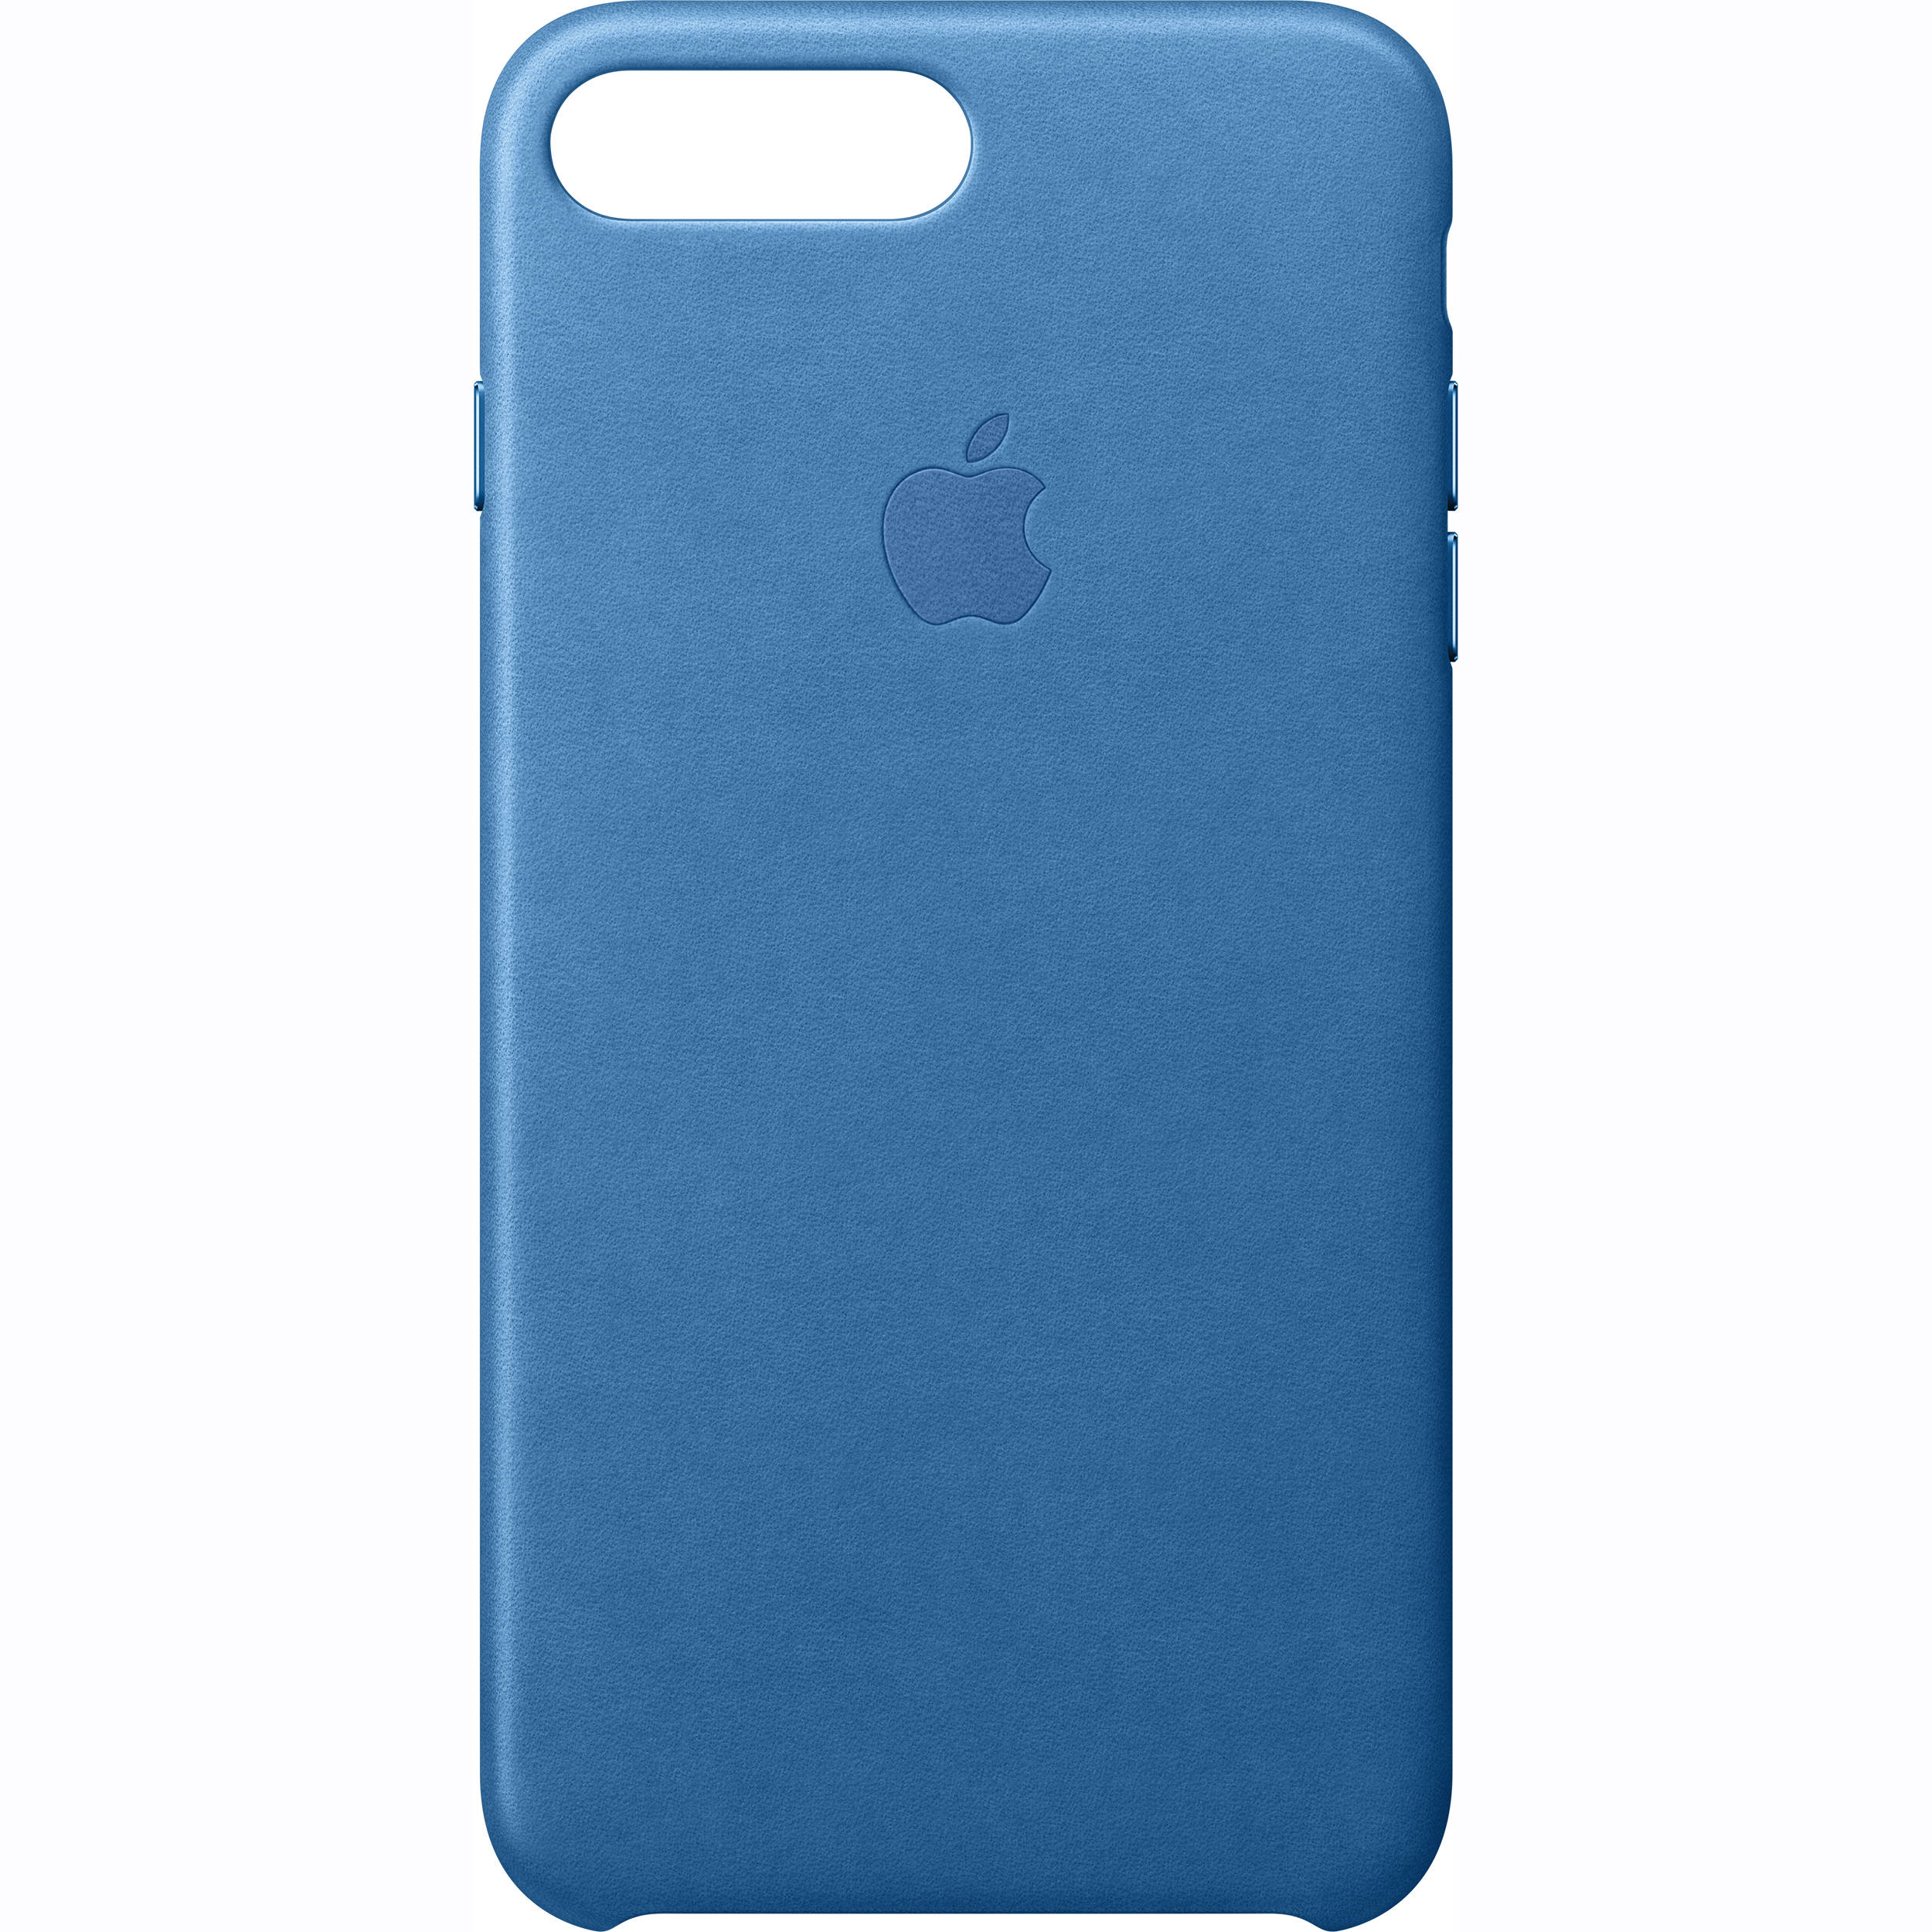 cheap for discount 20cfb 3005b Apple iPhone 7 Plus Leather Case (Sea Blue)